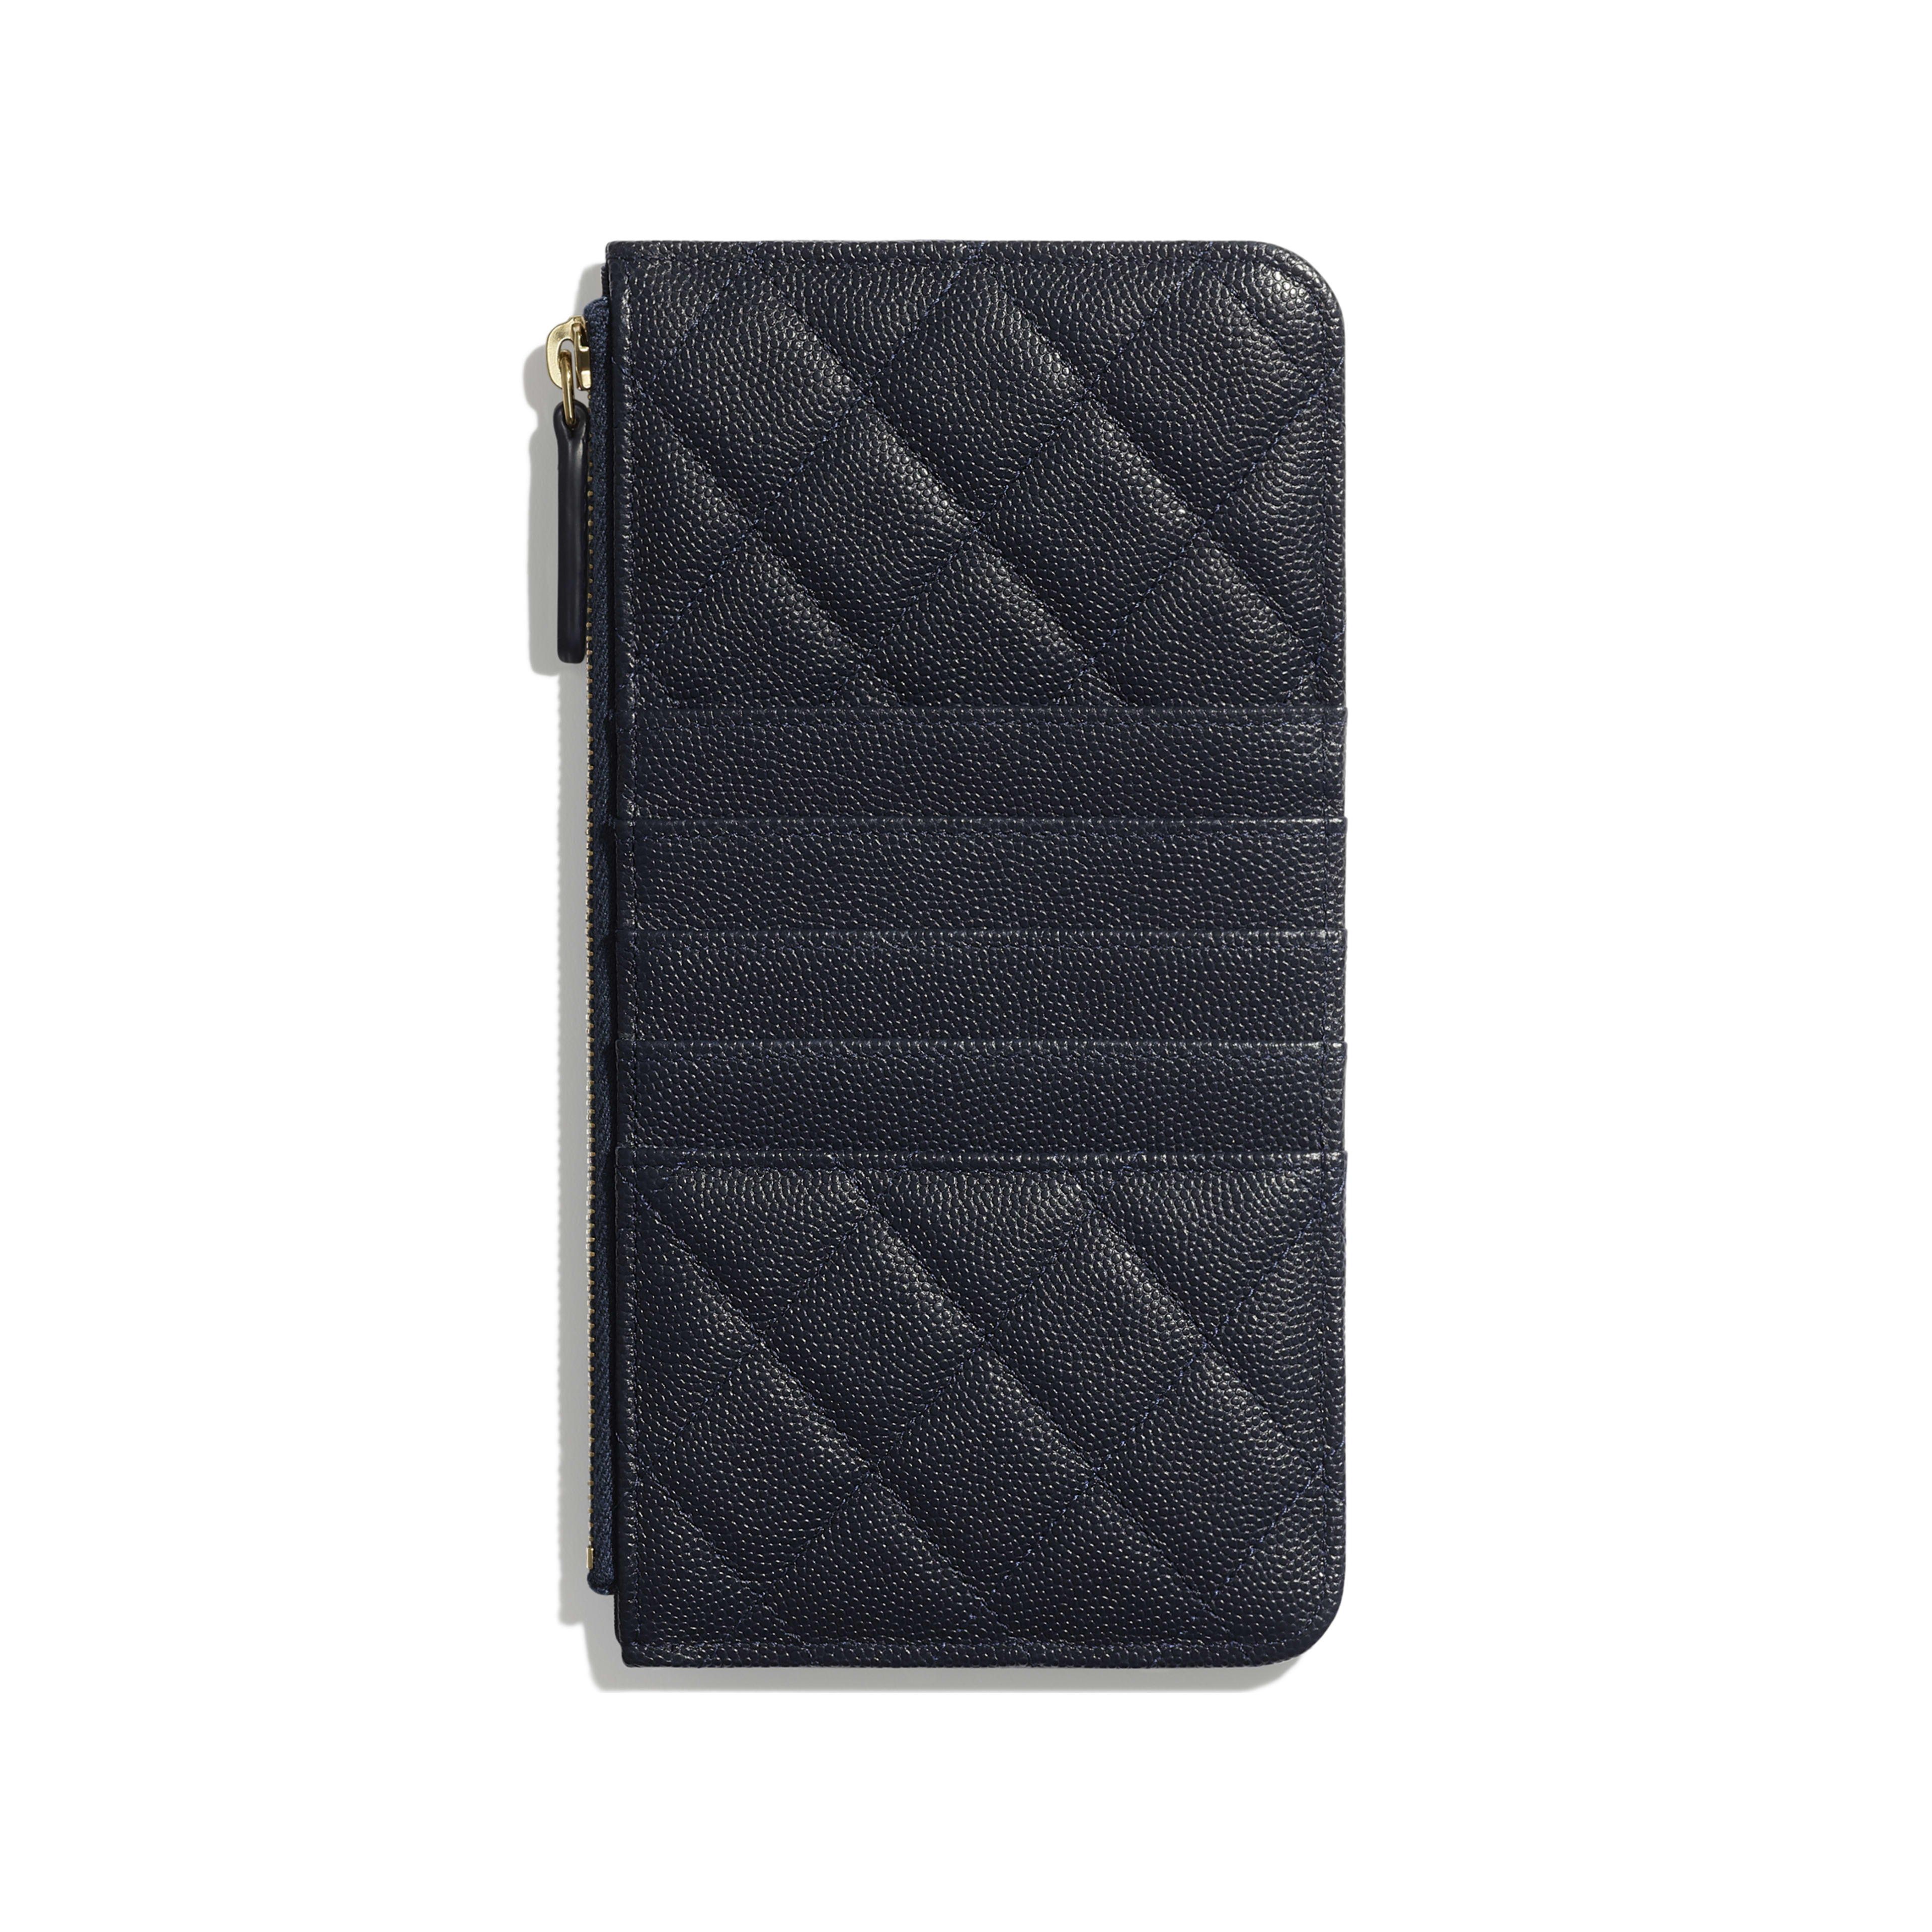 Classic Pouch for iPhone - Navy Blue - Grained Calfskin & Gold-Tone Metal - Alternative view - see full sized version